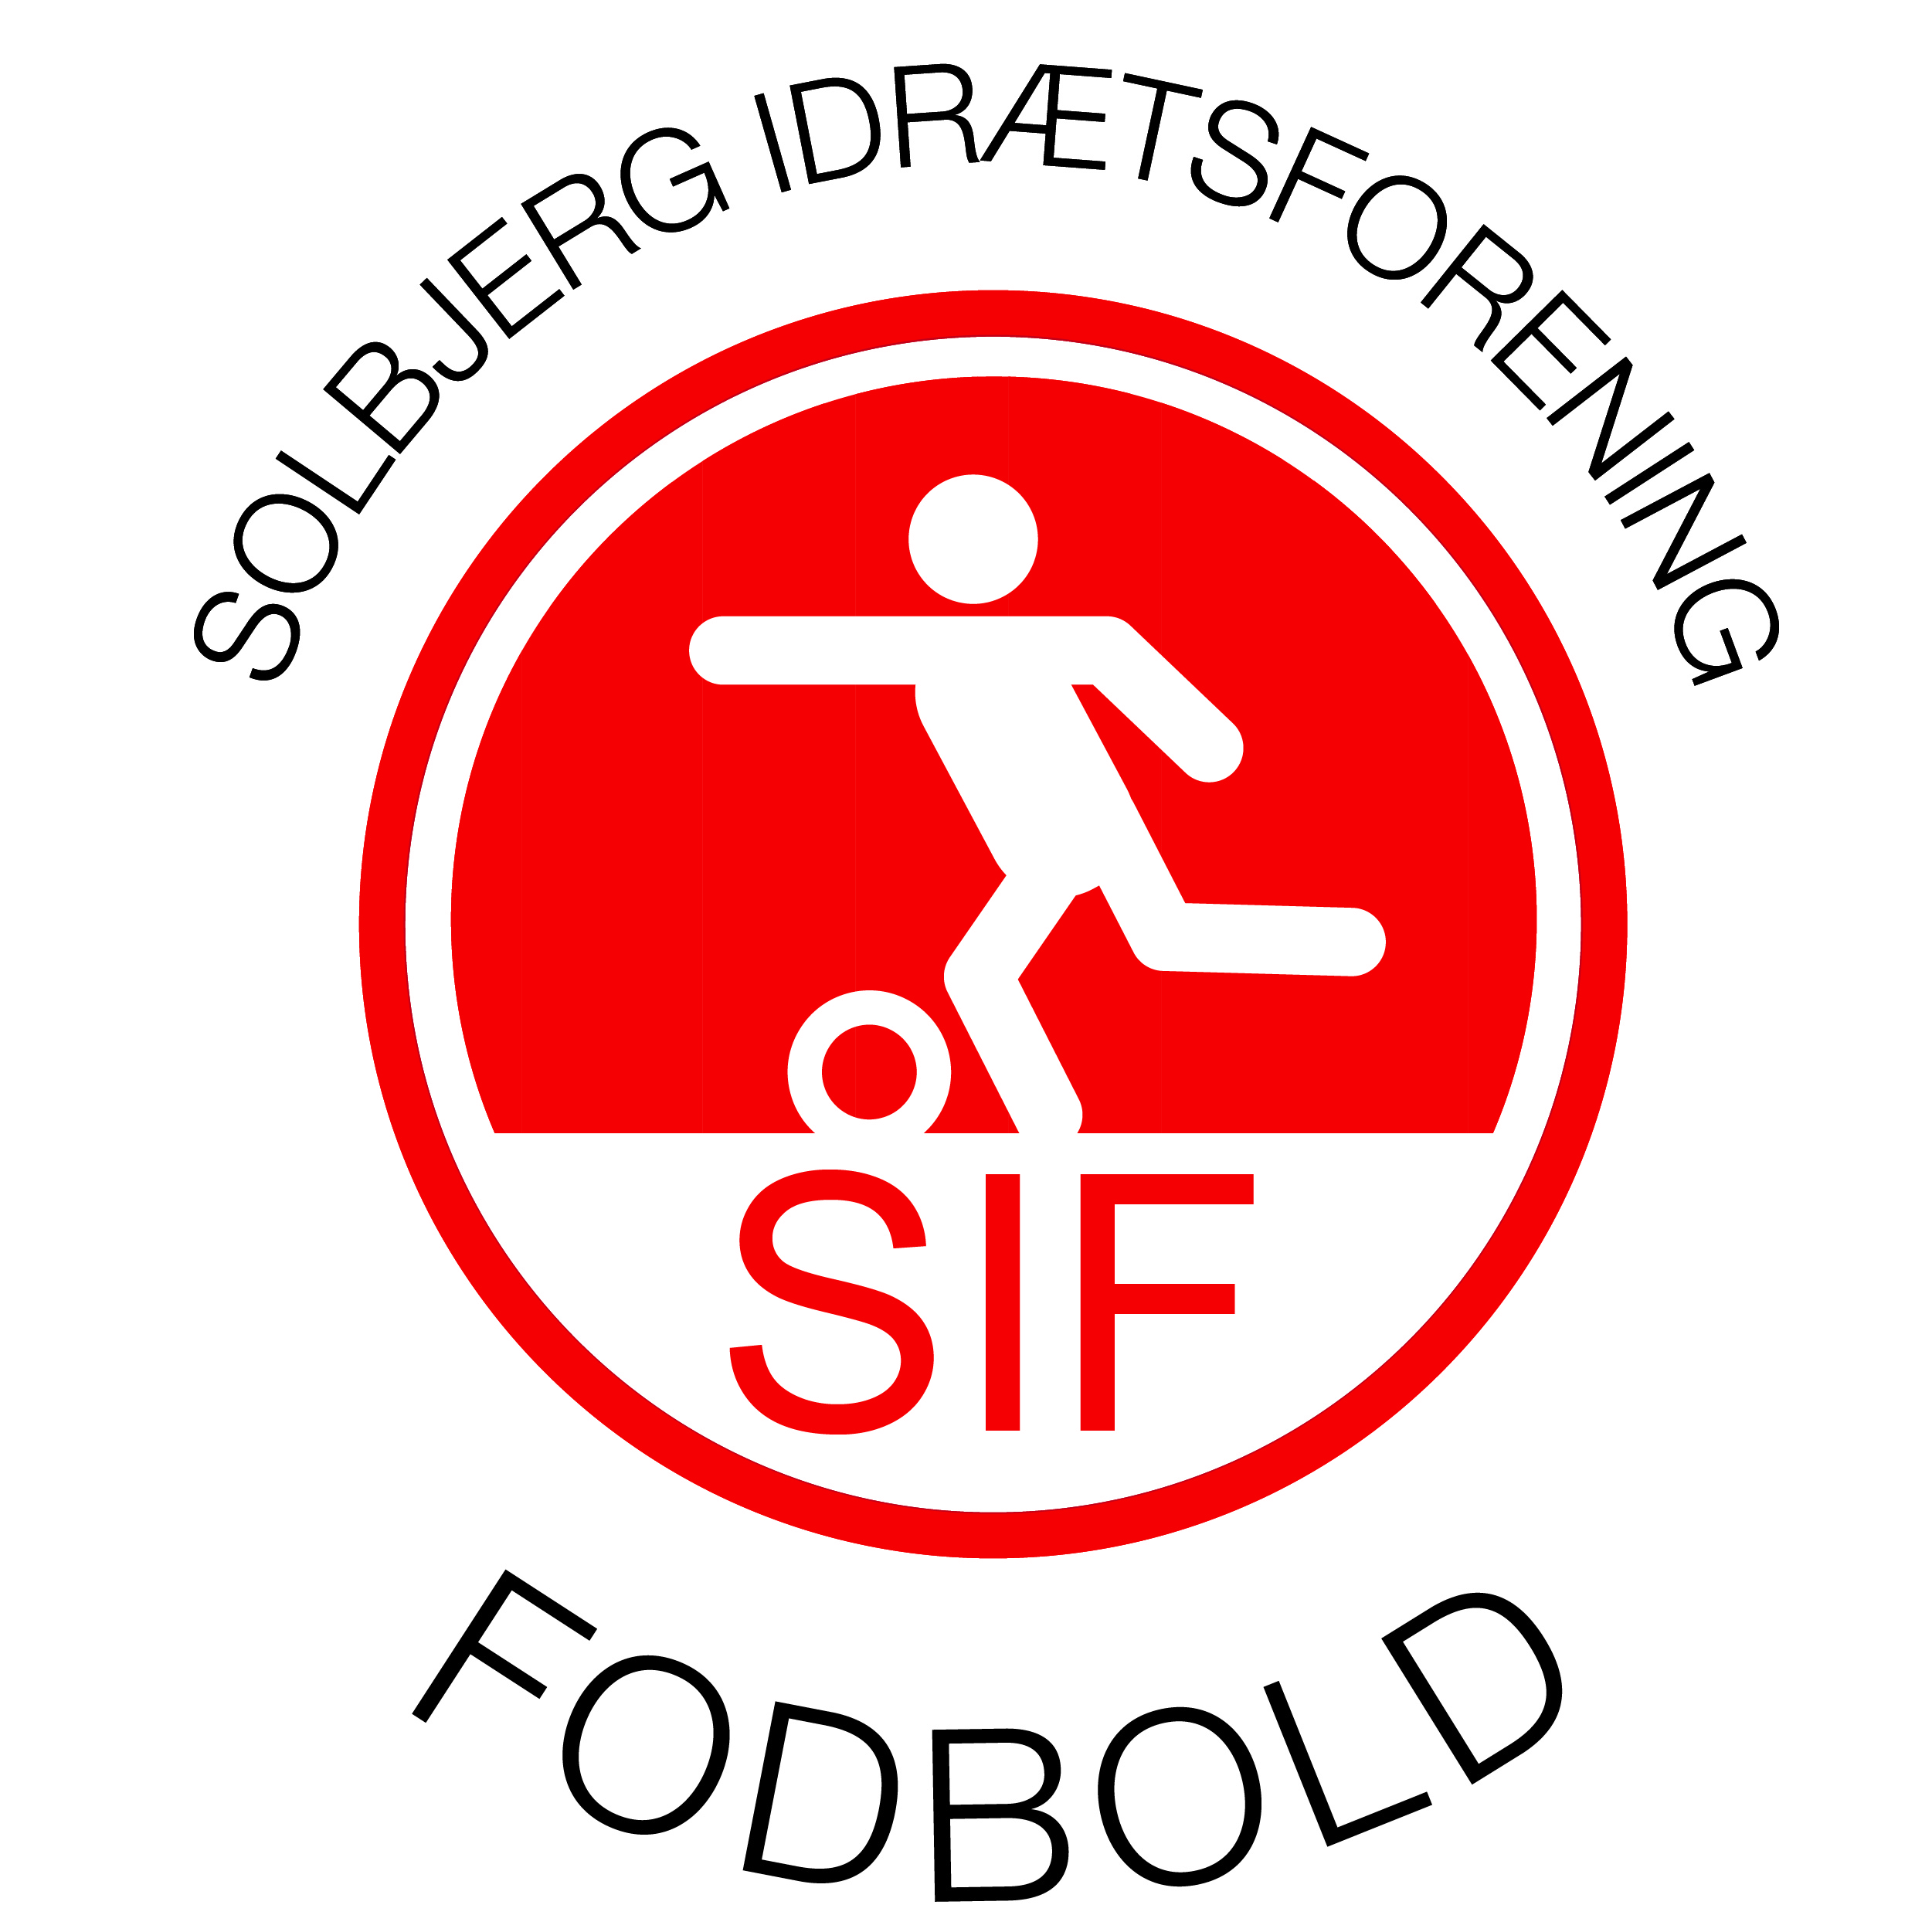 Solbjerg IF - Forsiden 6acbdb54a63fc